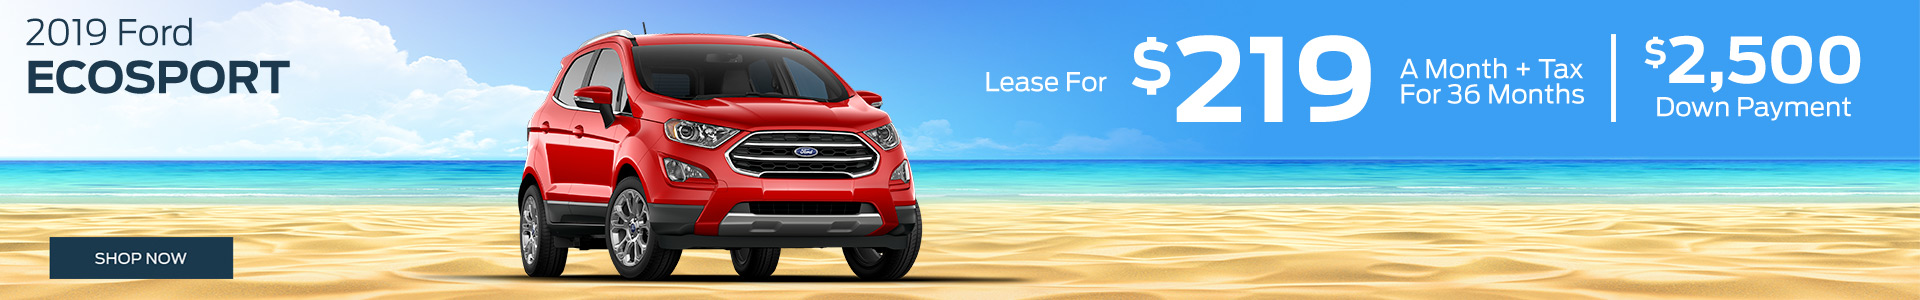 2019 Ford Ecosport - Lease for $219